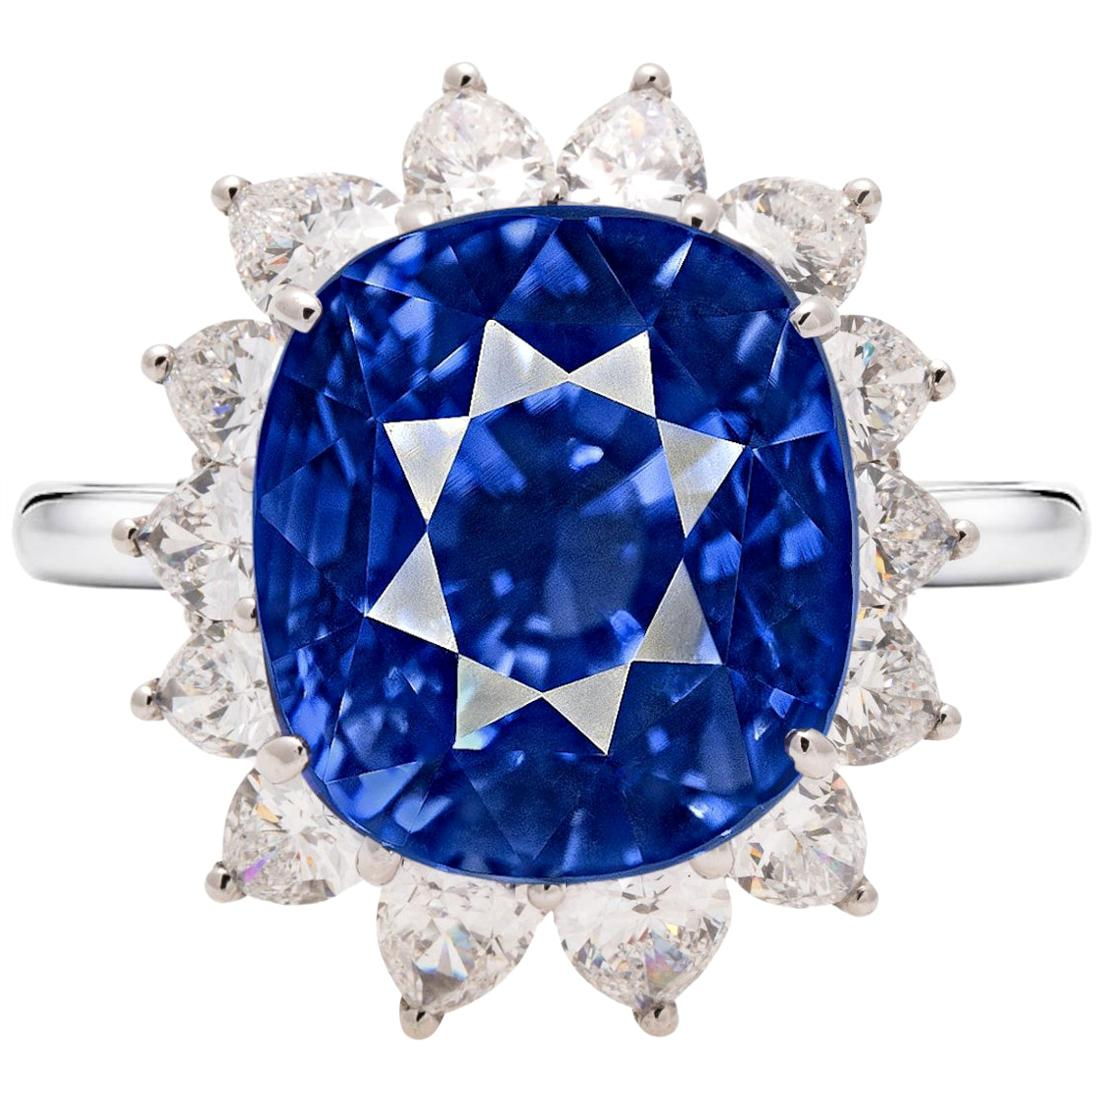 IMPORTANT FLAWLESS KASHMIR GIA Certified 8 Carat Blue Sapphire Platinum Ring